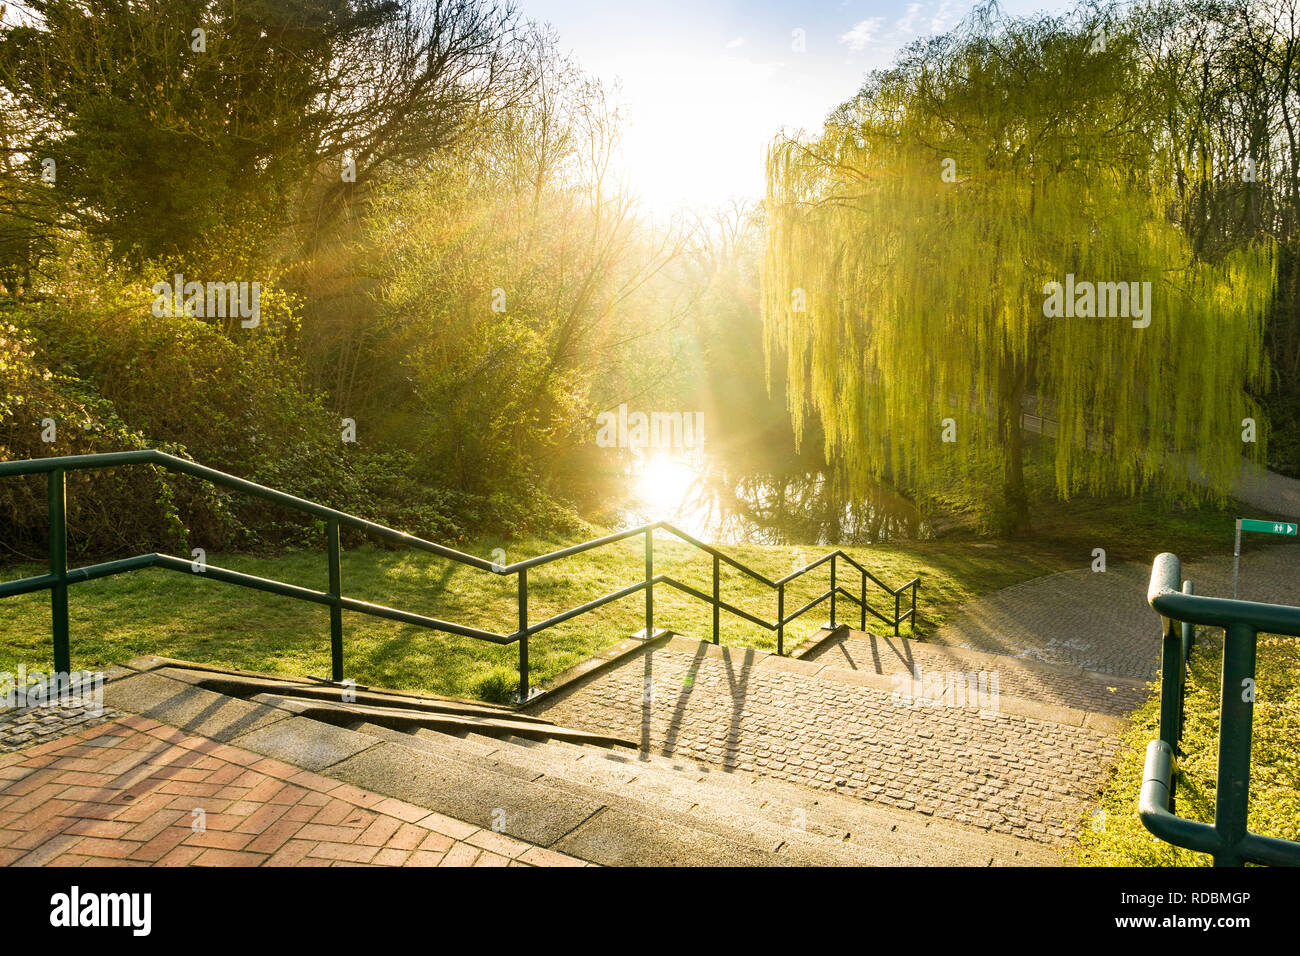 backlight scene in the park - morning hour after sunset - stairs in the park - Stock Image